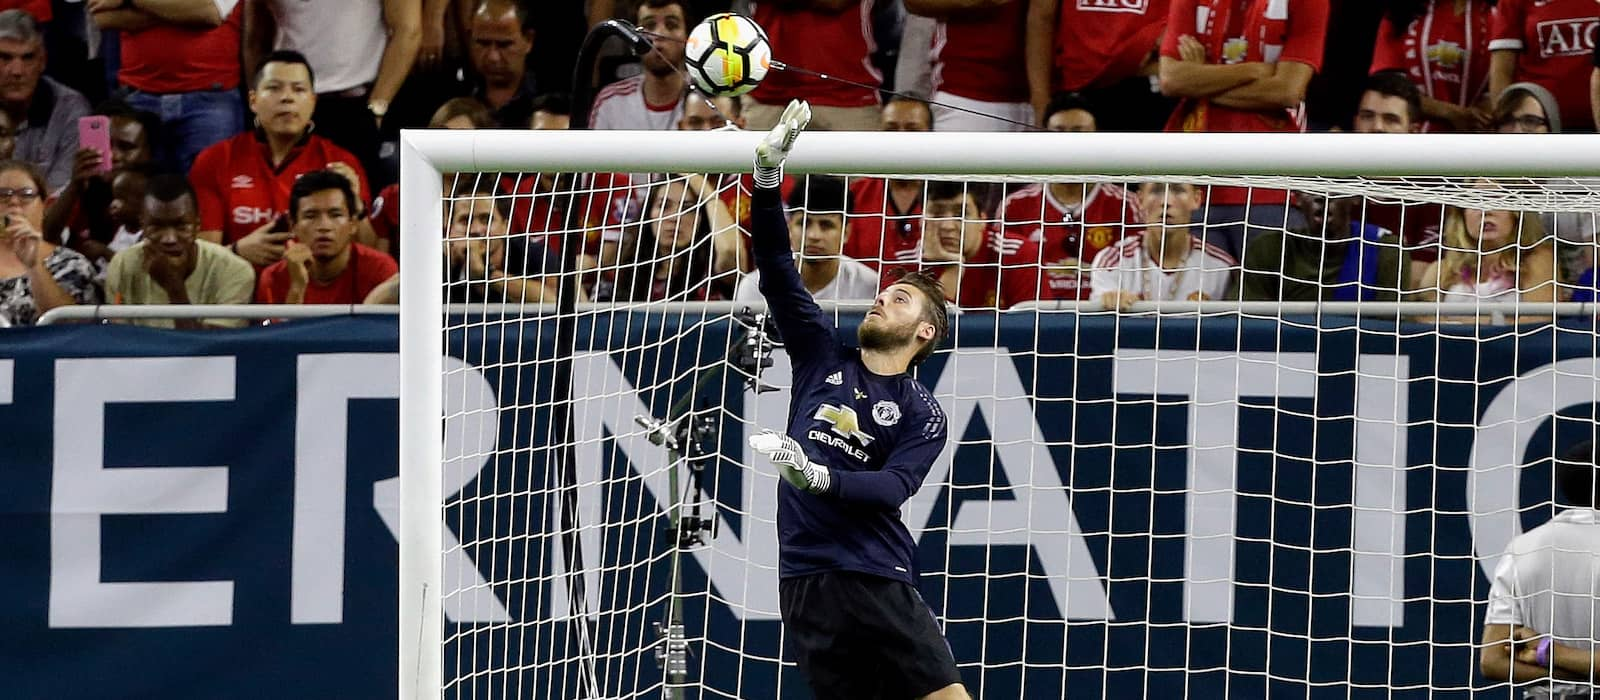 From France: Paris Saint Germain ready to launch bid for David de Gea